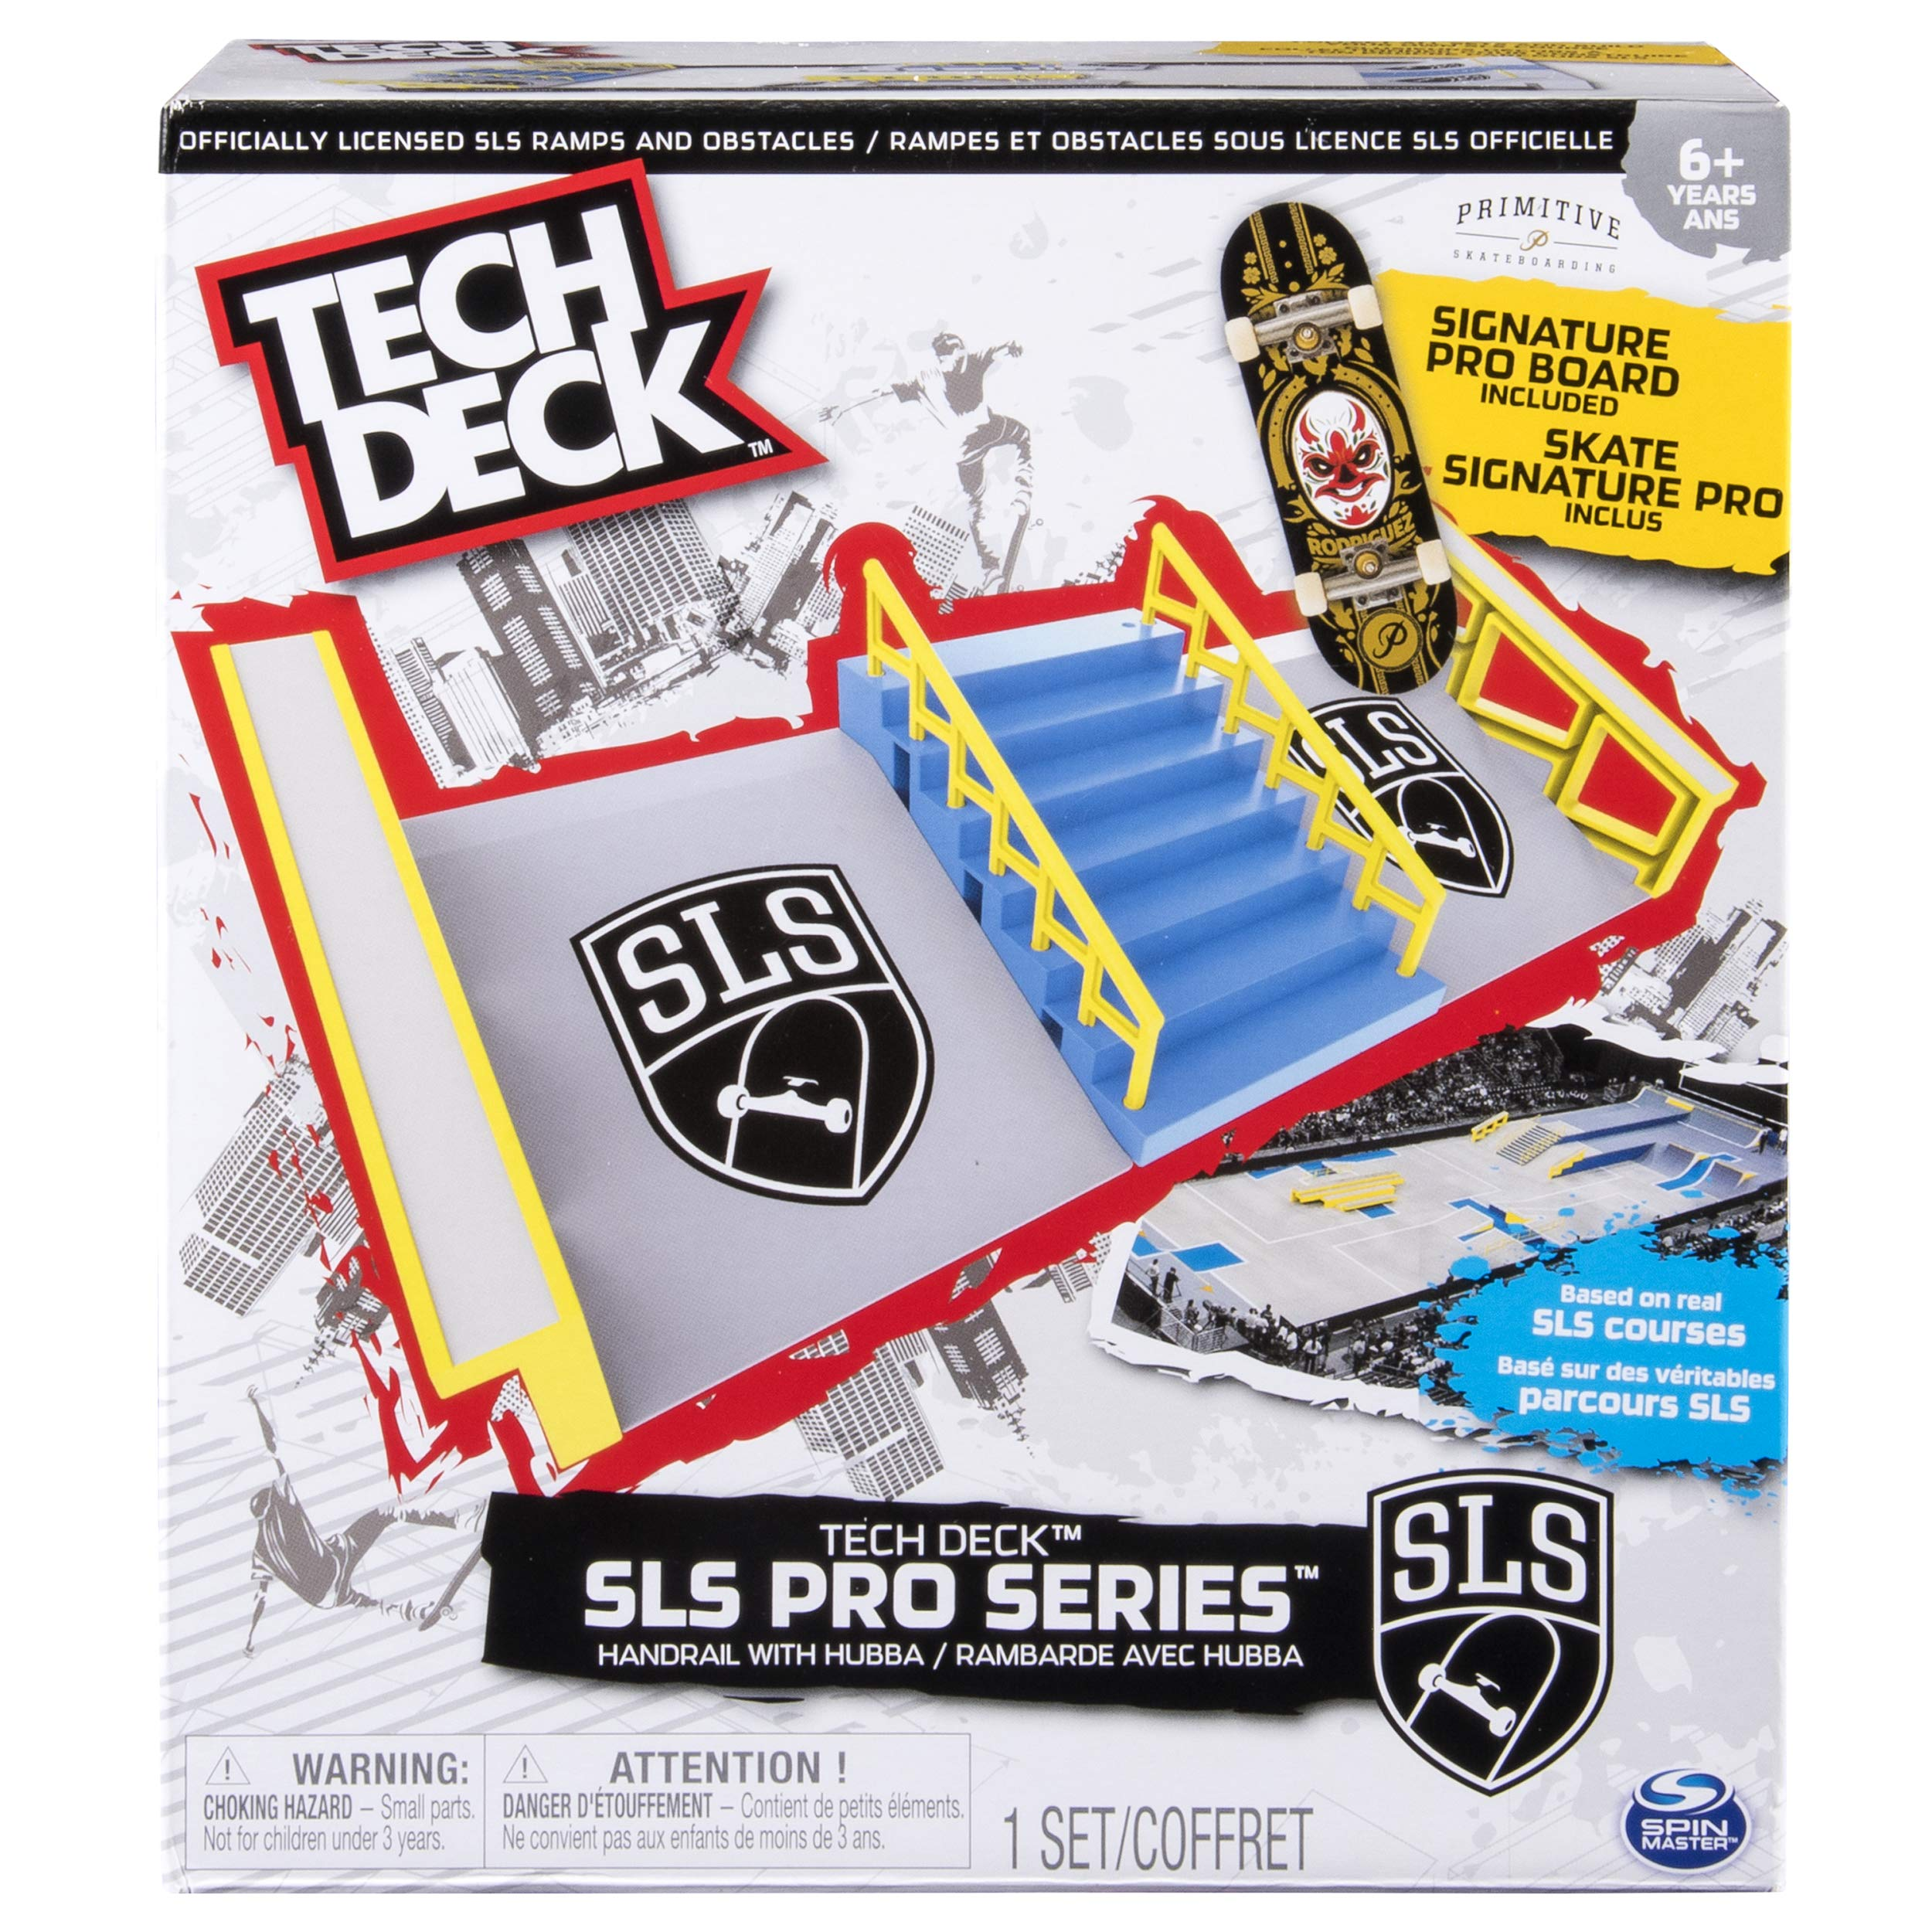 TECH DECK - SLS Pro Series Skate Park - Handrail with Hubba and Signature Pro Board by TECH DECK